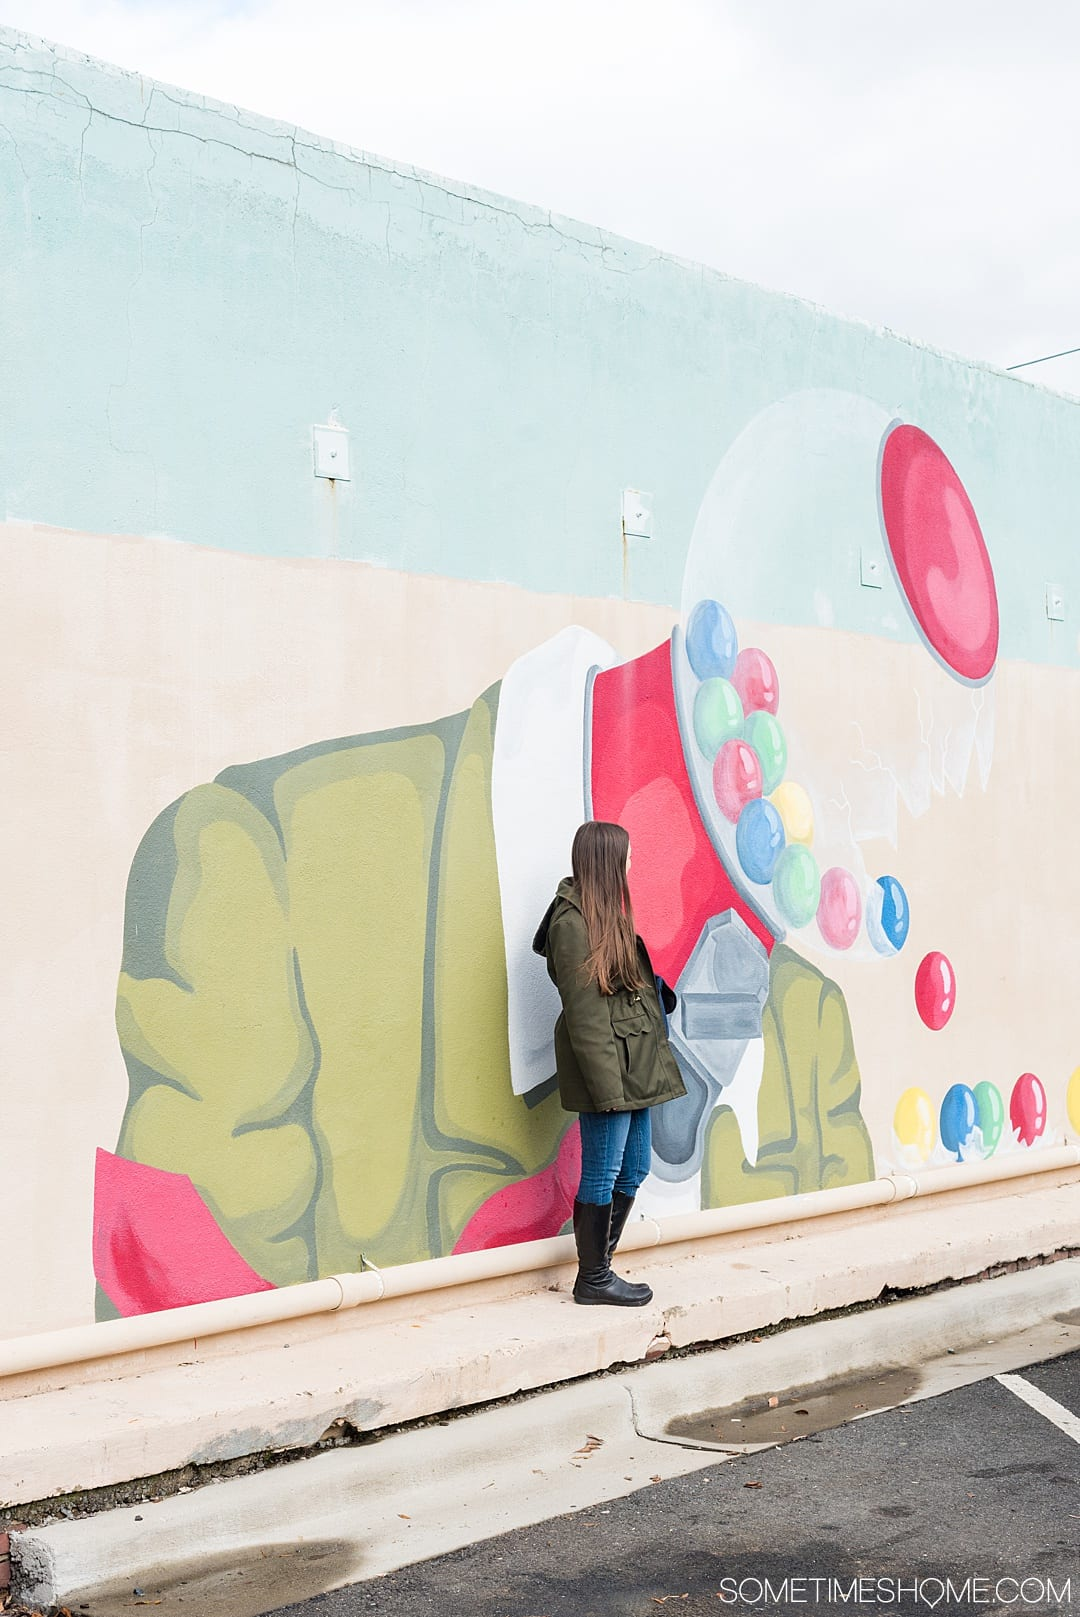 Ideas for Winston Salem attractions and things to do in North Carolina, from downtown art murals to restaurants. This beautiful NC city is a great weekend trip or overnight anywhere on the east coast for travel enthusiasts. #VisitNC #NorthCarolina #WinstonSalem #sometimeshome #eastcoasttravel #piedmontNC #streetart #murals